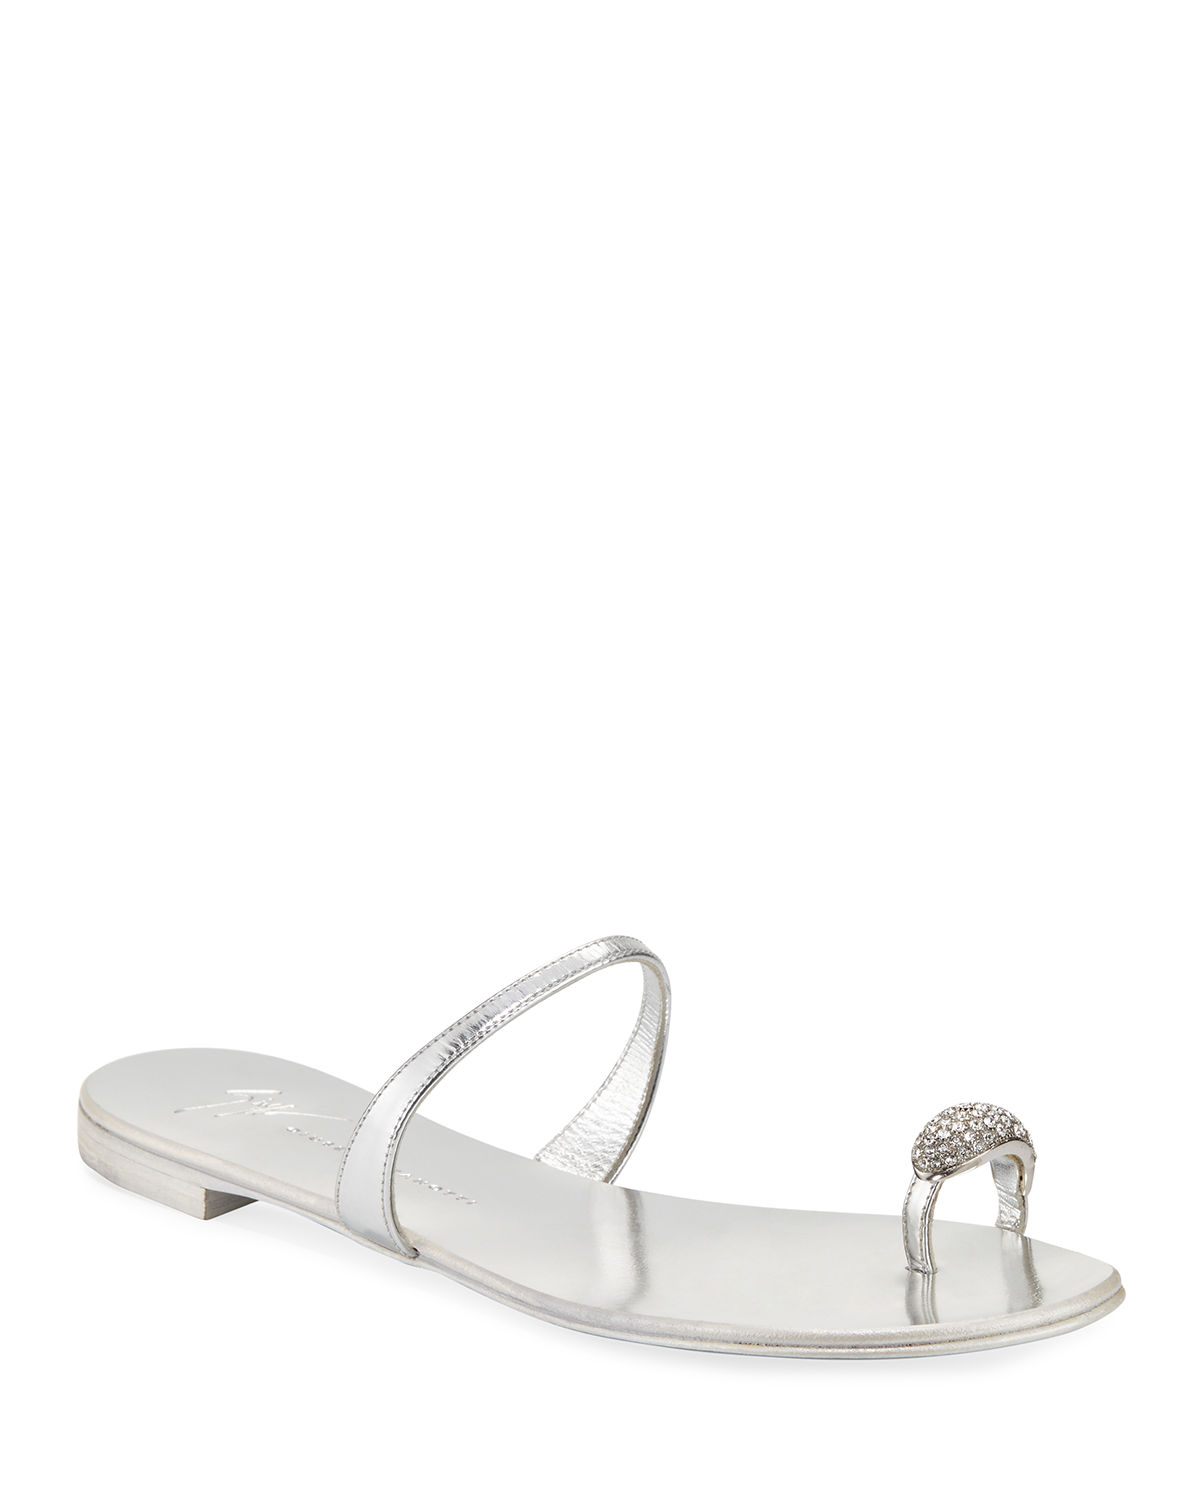 8f2225f960d Giuseppe Zanotti Crystal-Embellished Flat Toe-Ring Sandals